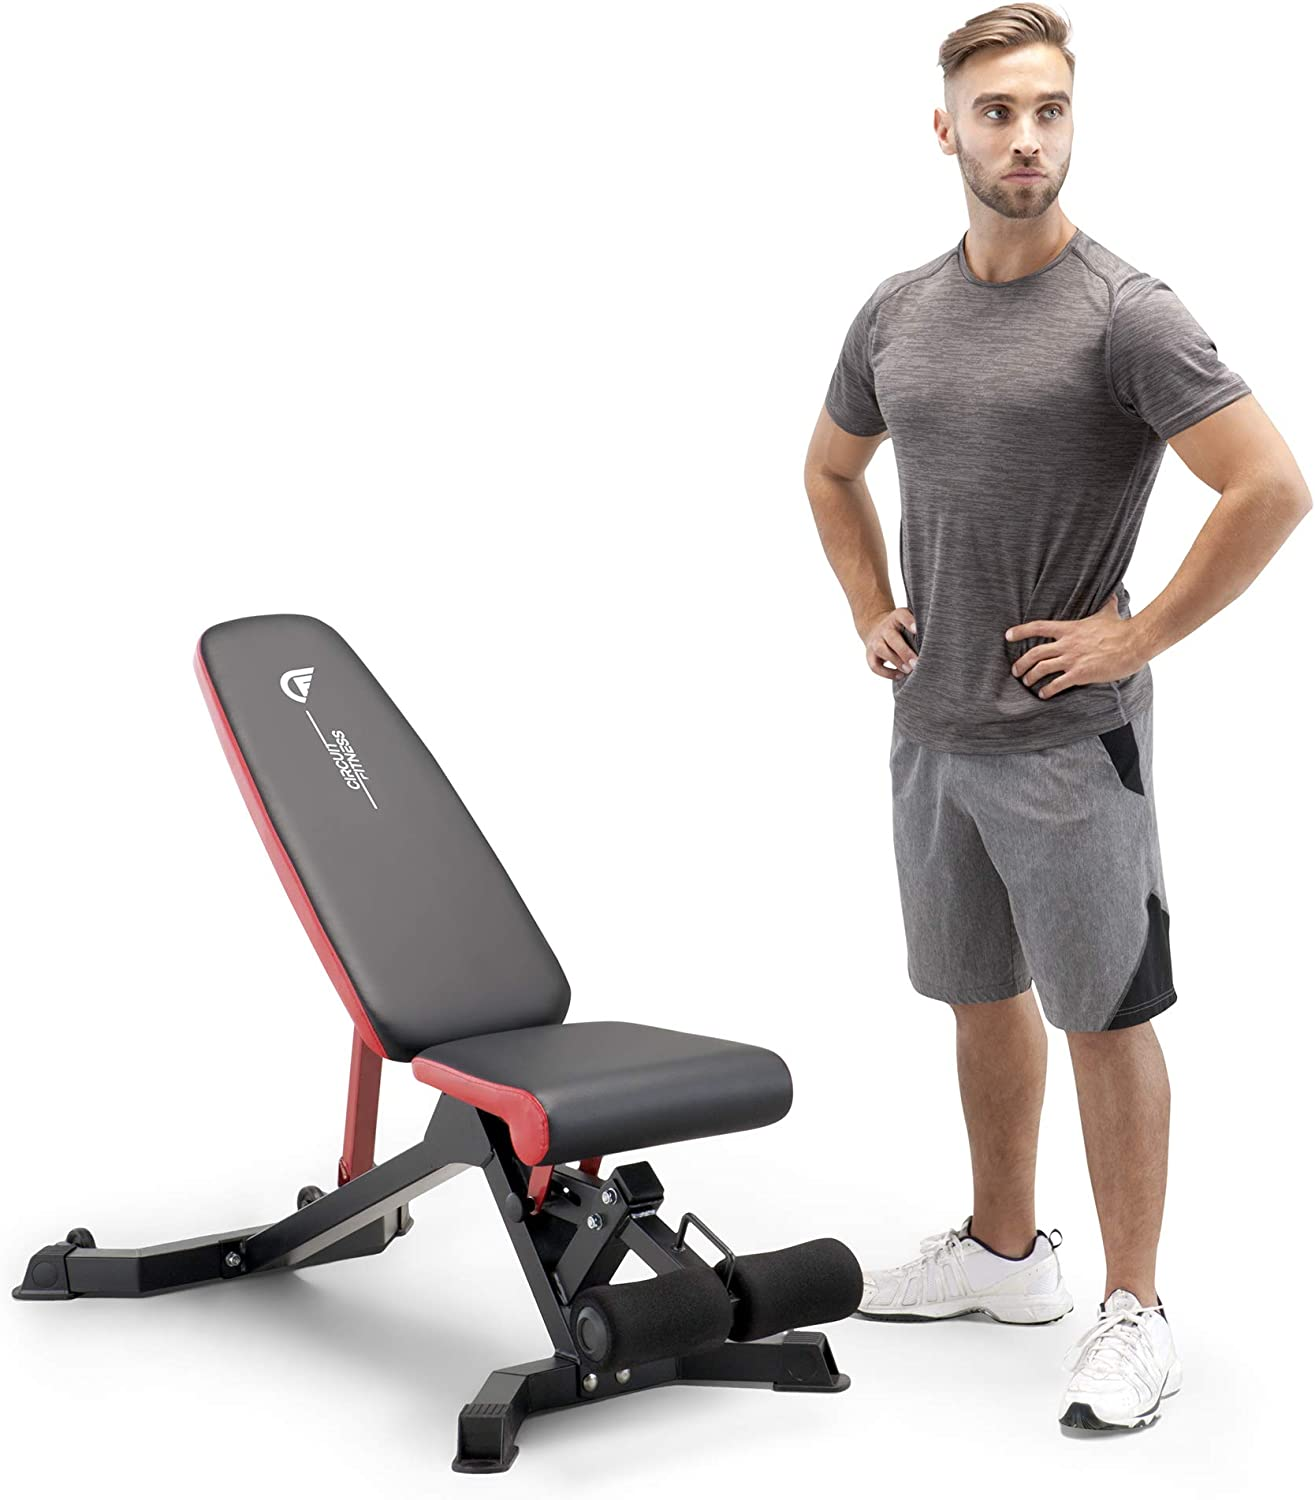 Details about  /Gym At Home Exercise Equipment BENCH Arm Chest Abs Workout For Men Women Fitness